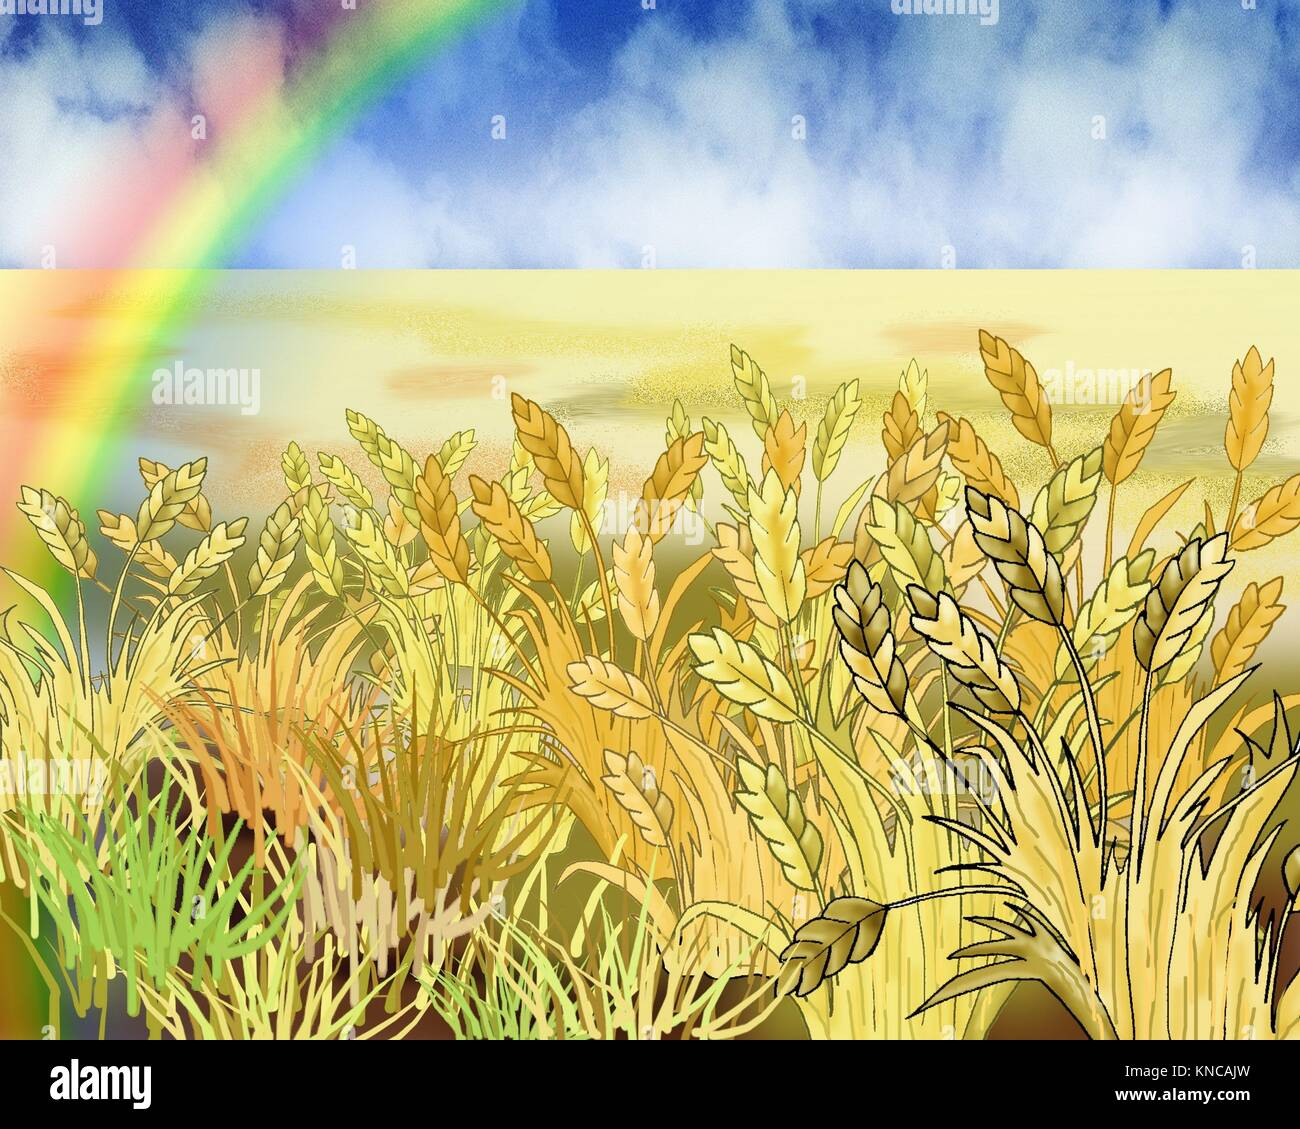 Digital Painting, Illustration of a Rainbow Over Wheat Field in Summer Day. Cartoon Style Character, Fairy Tale - Stock Image